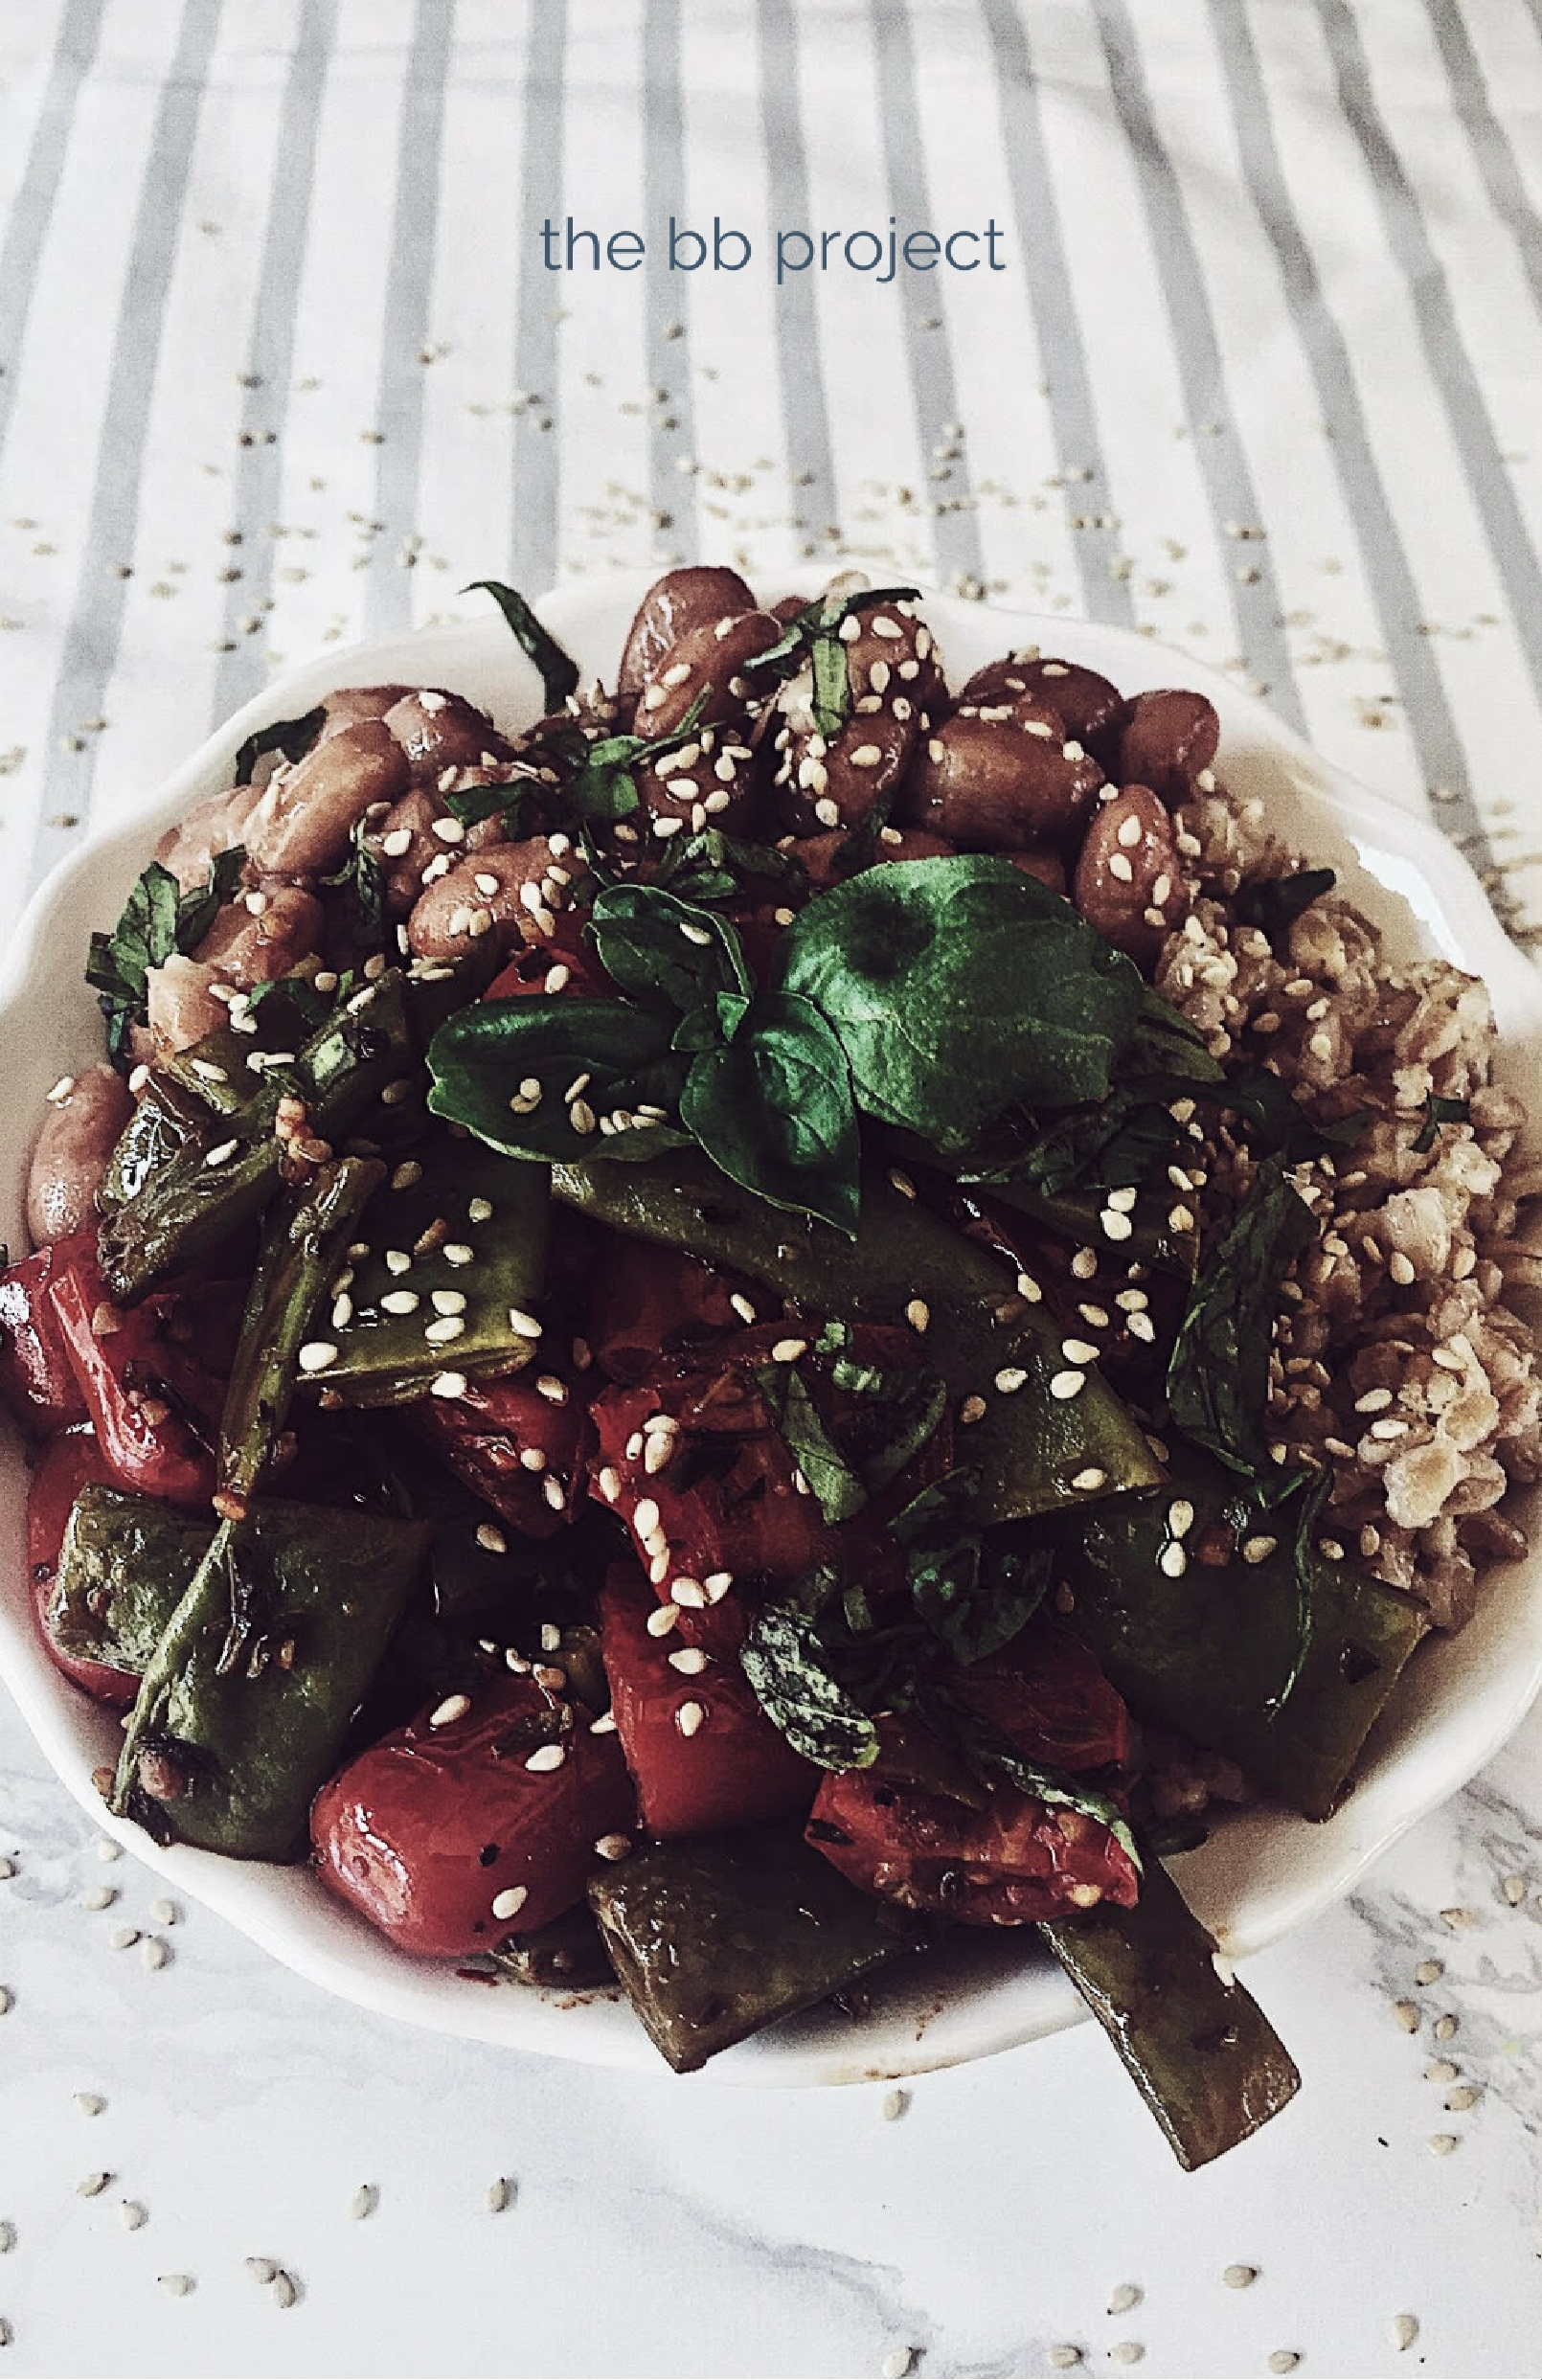 Italian farro recipes: the farro buddha bowl